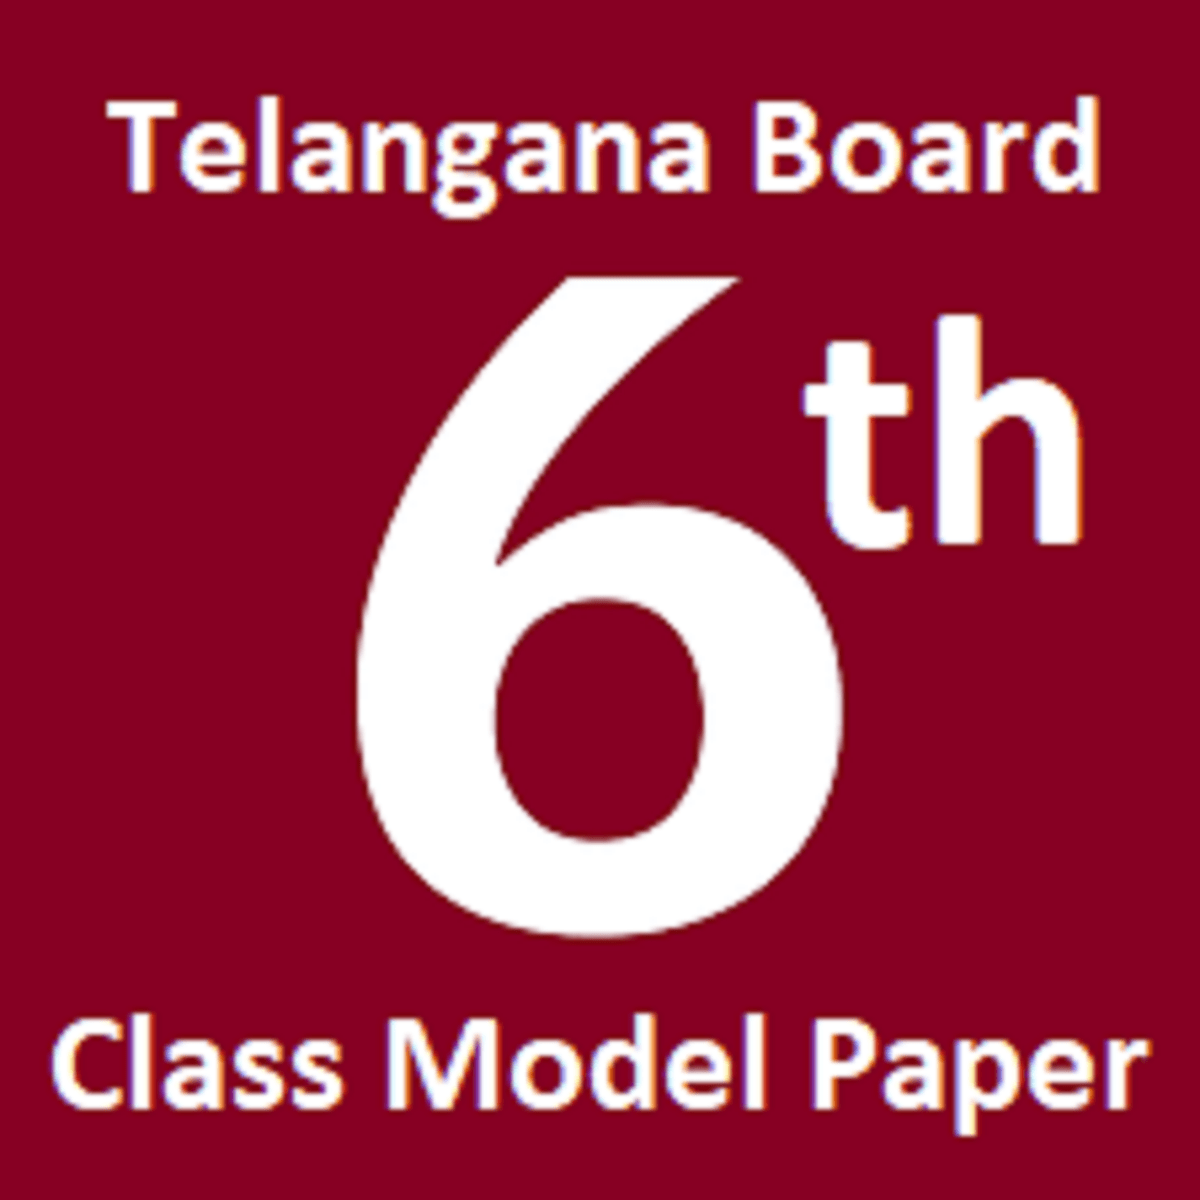 TS 6th Model Paper 2021 TS 6th Question Paper 2021 Telugu English Hindi